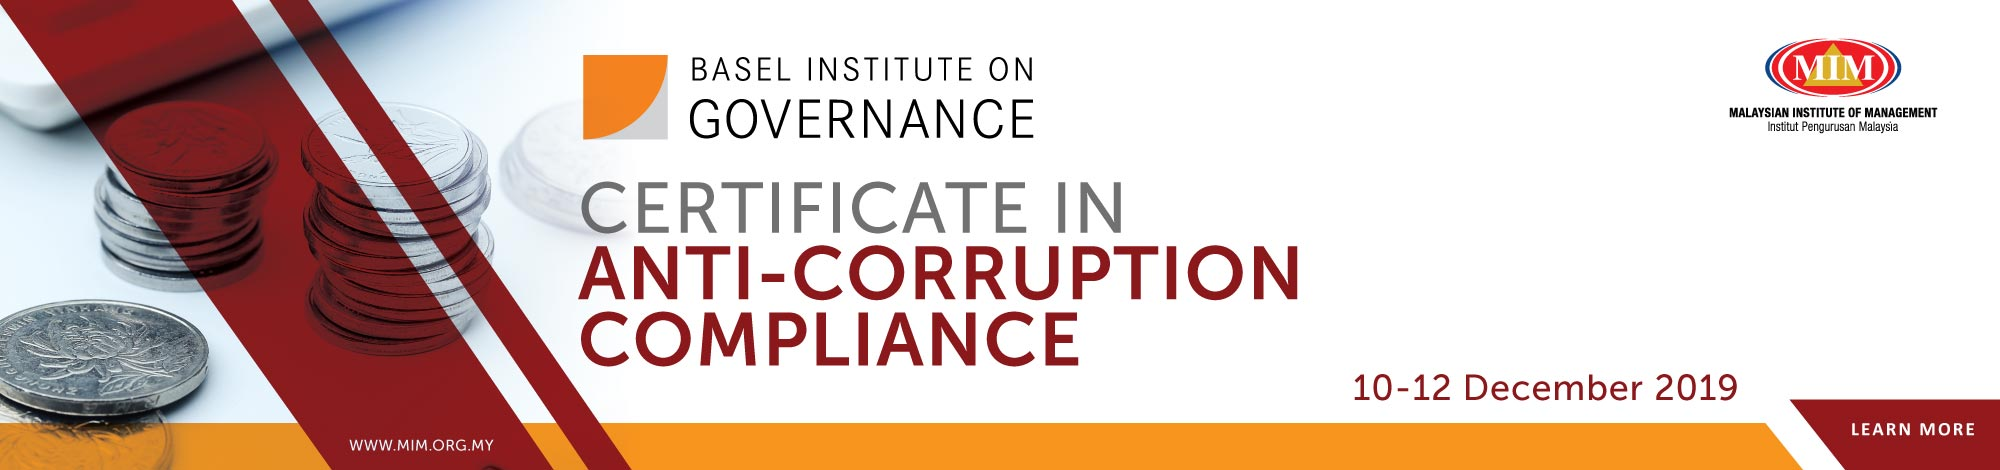 CERTIFICATE-IN-ANTI-CORRUPTION-COMPLIANCE-Social-Media-2019_Website_new